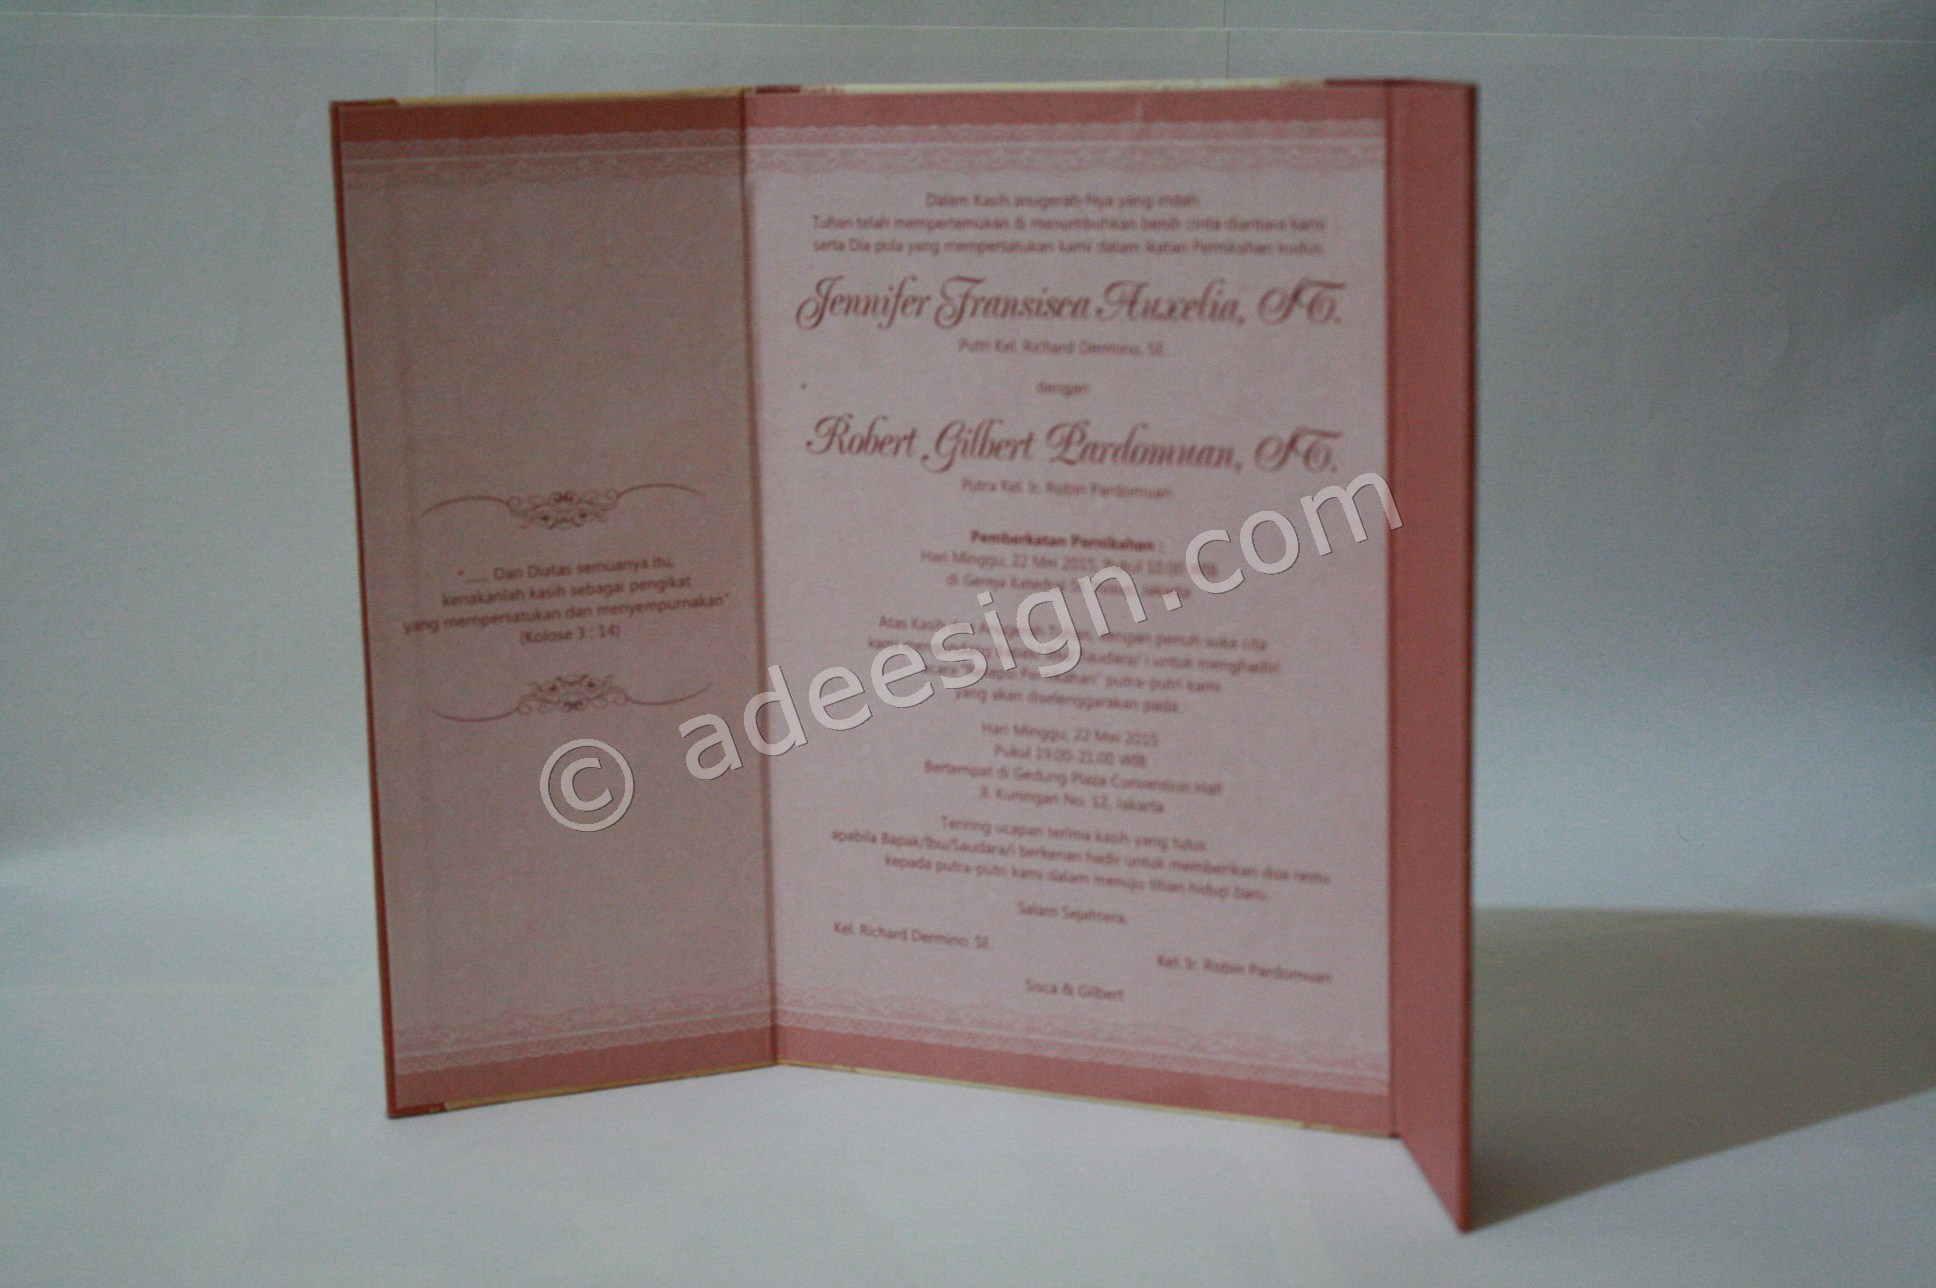 Undangan Pernikahan Hard Cover Sisca dan Gilbert 4 - Pesan Wedding Invitations Simple di Jambangan Karah